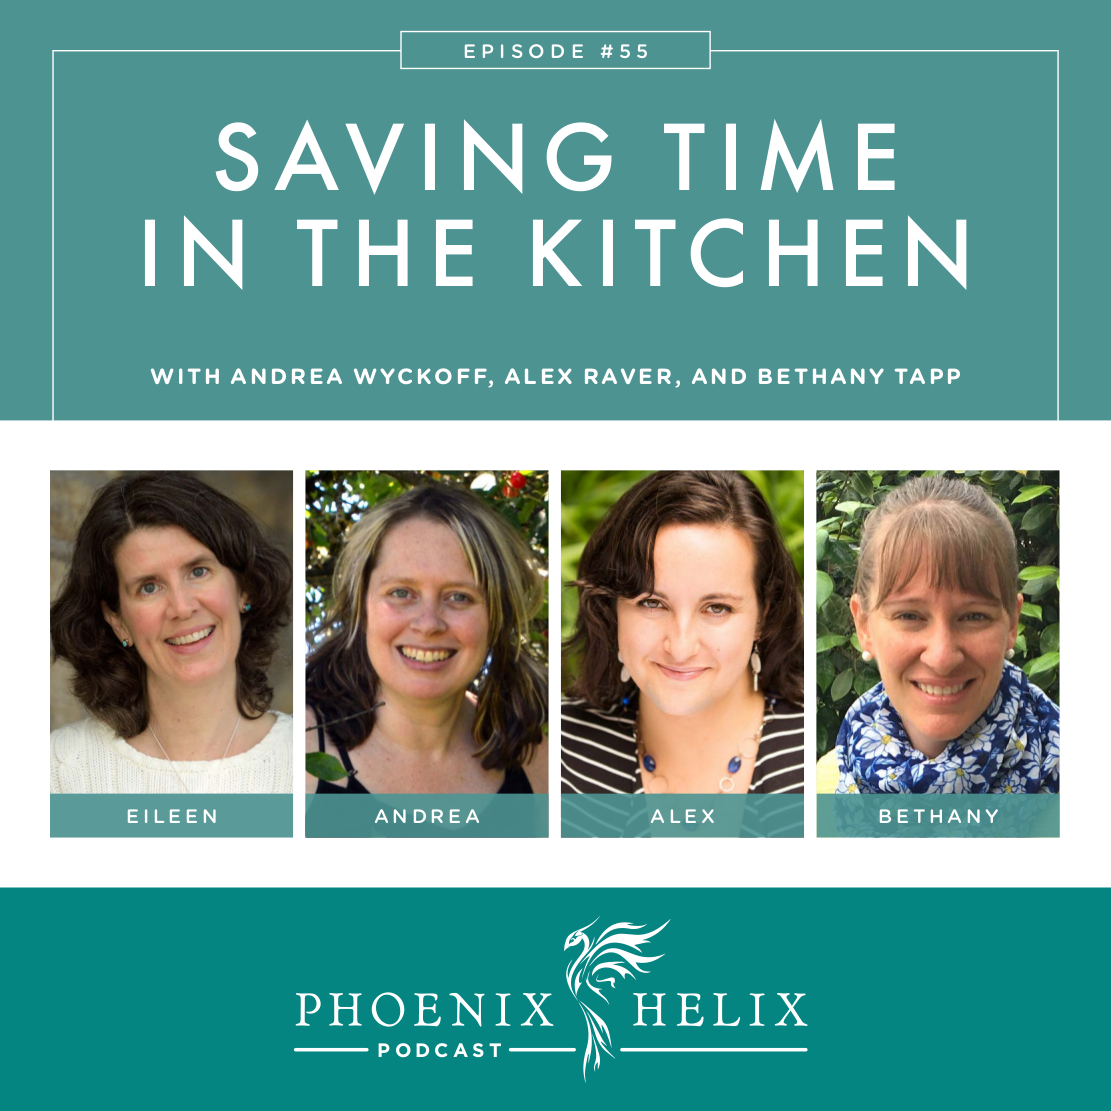 Saving Time in the Kitchen | Phoenix Helix Podcast